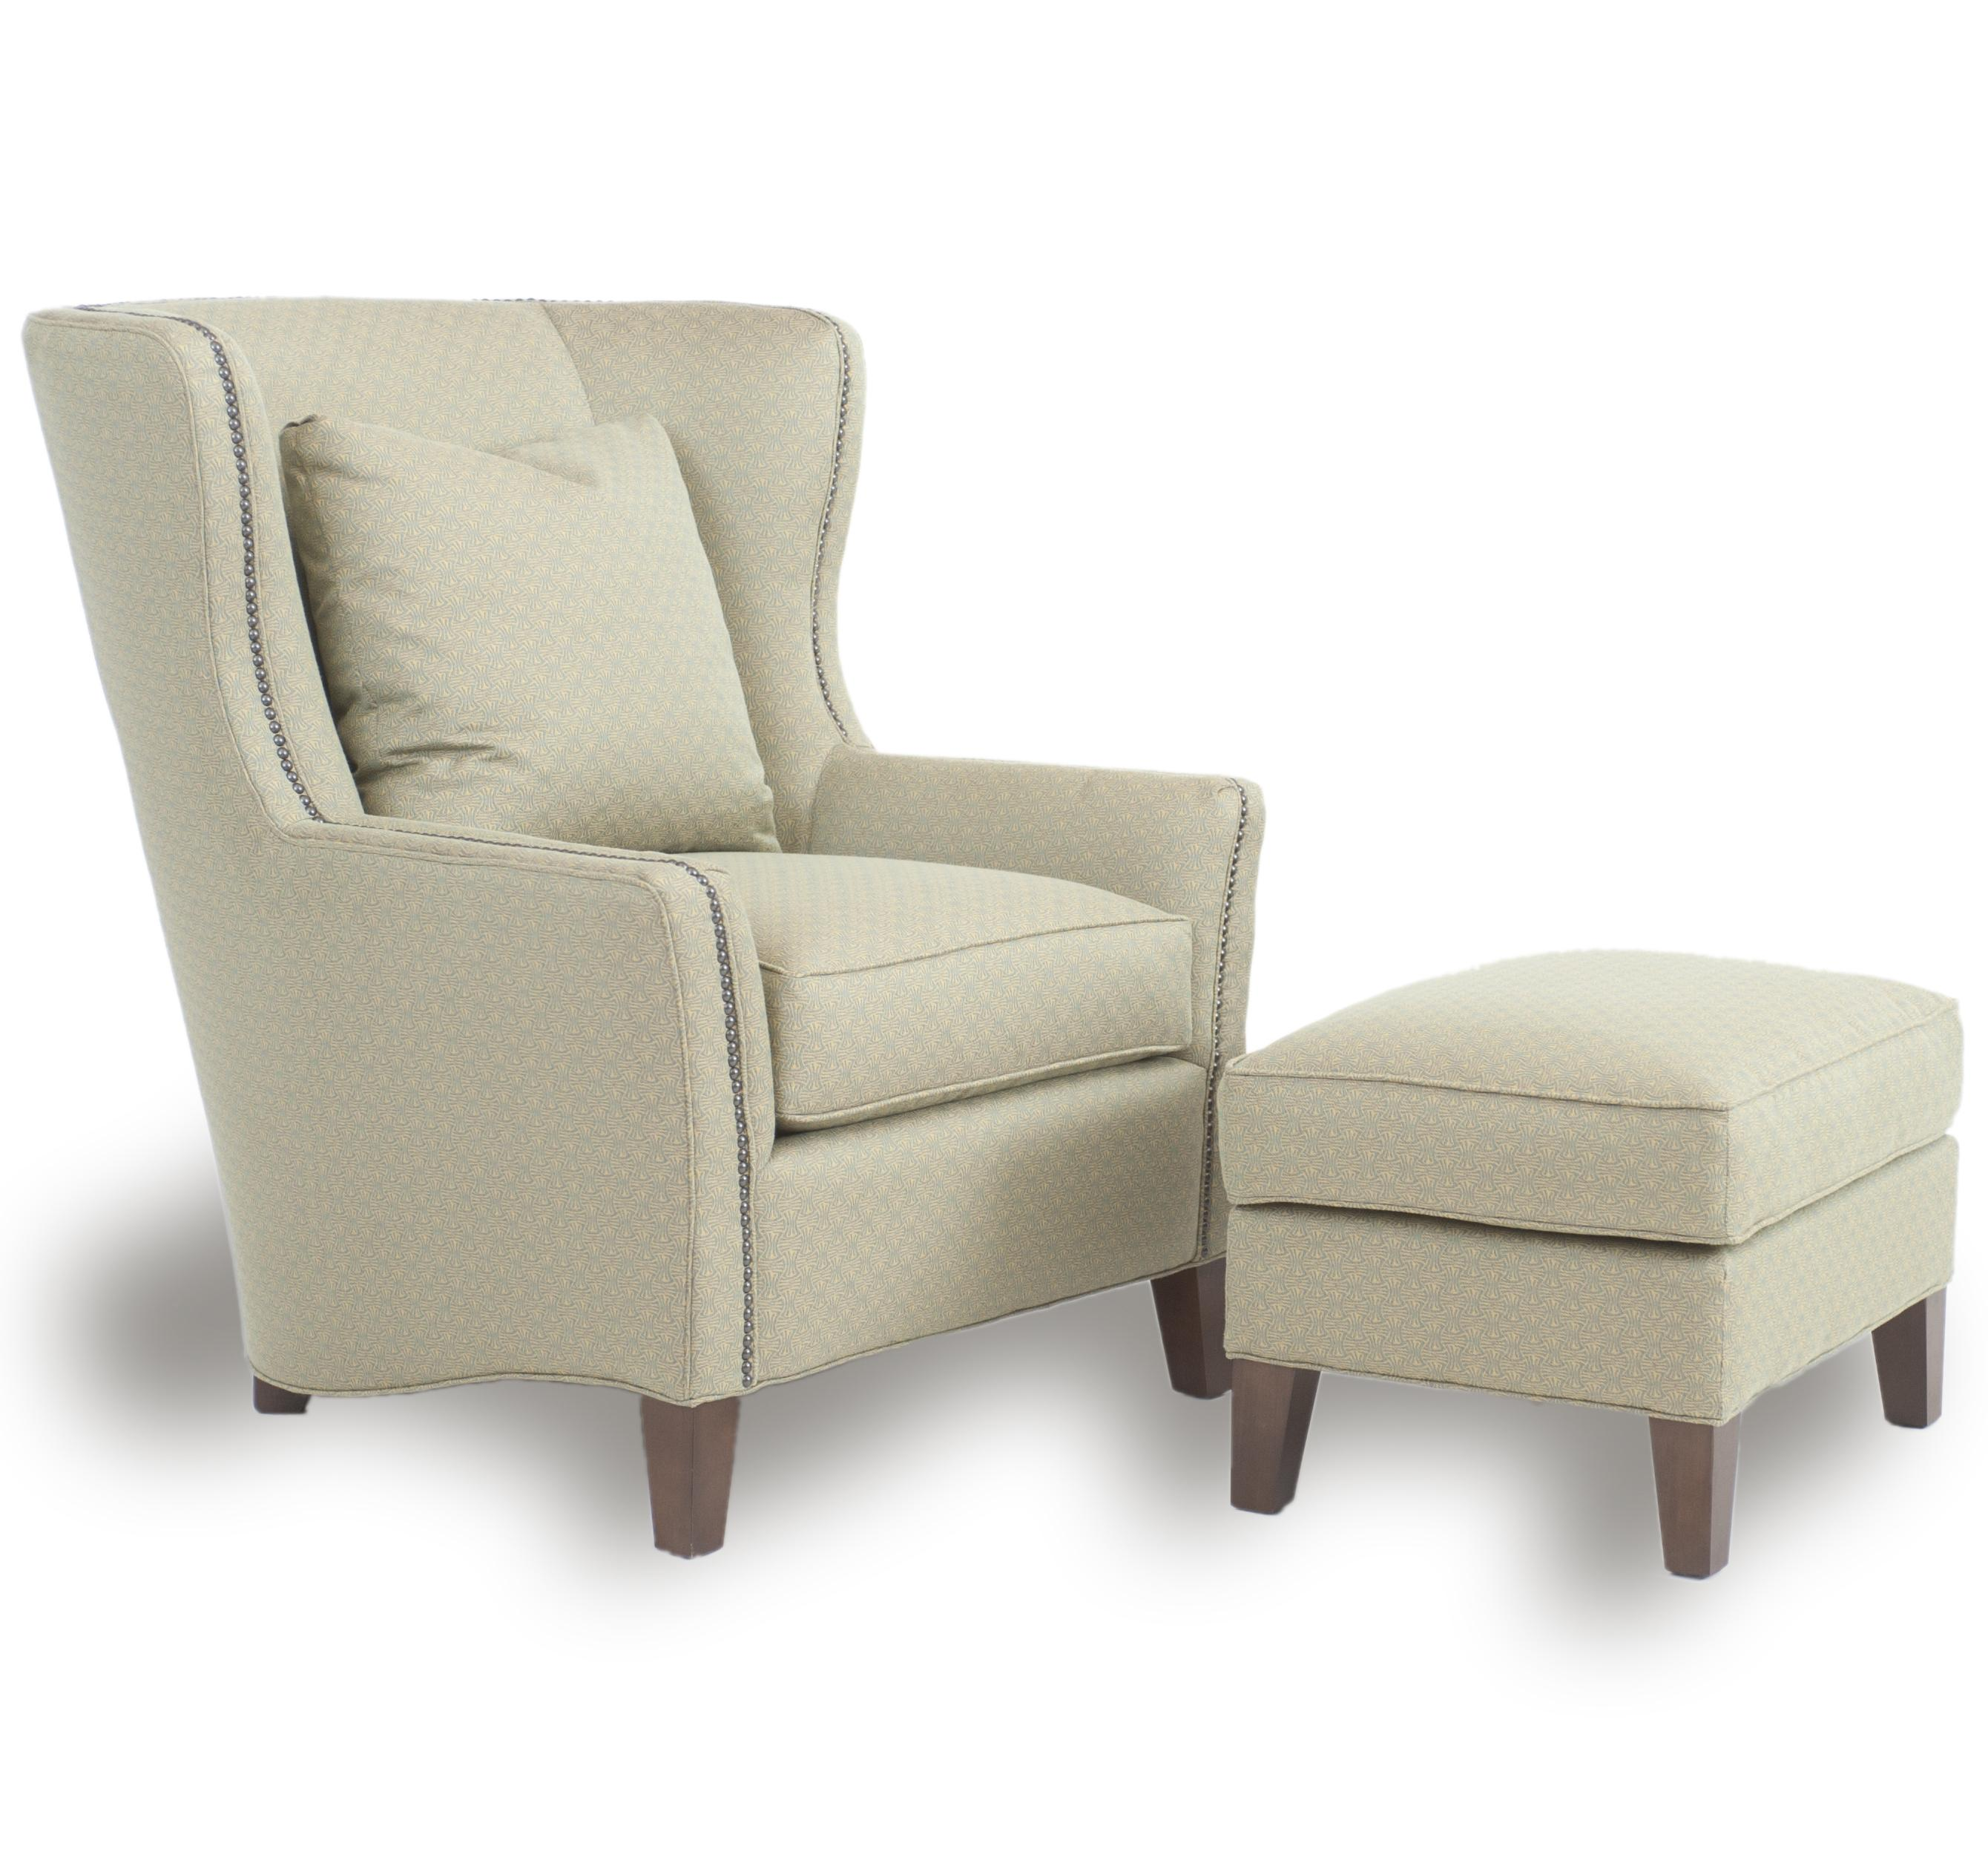 Chairs With Ottomans Wingback Chair And Ottoman By Smith Brothers Wolf And